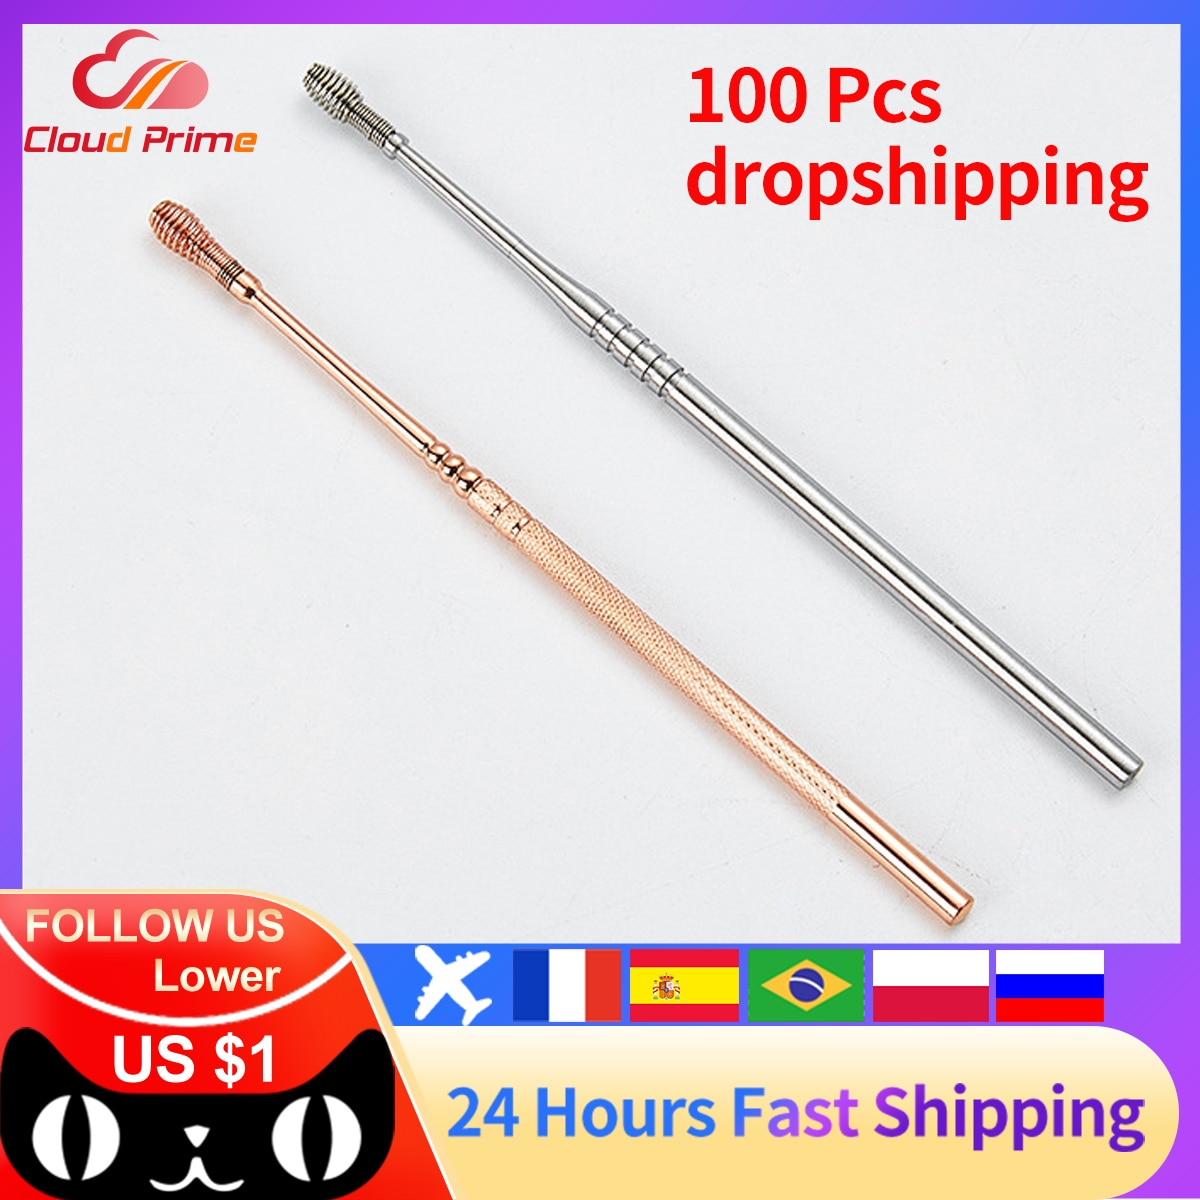 wholesale dropshipping 100Pcs Stainless Steel Spiral Ear Pick Spoon Ear Wax Removal Cleaner Ear Tool Multi-function Portable